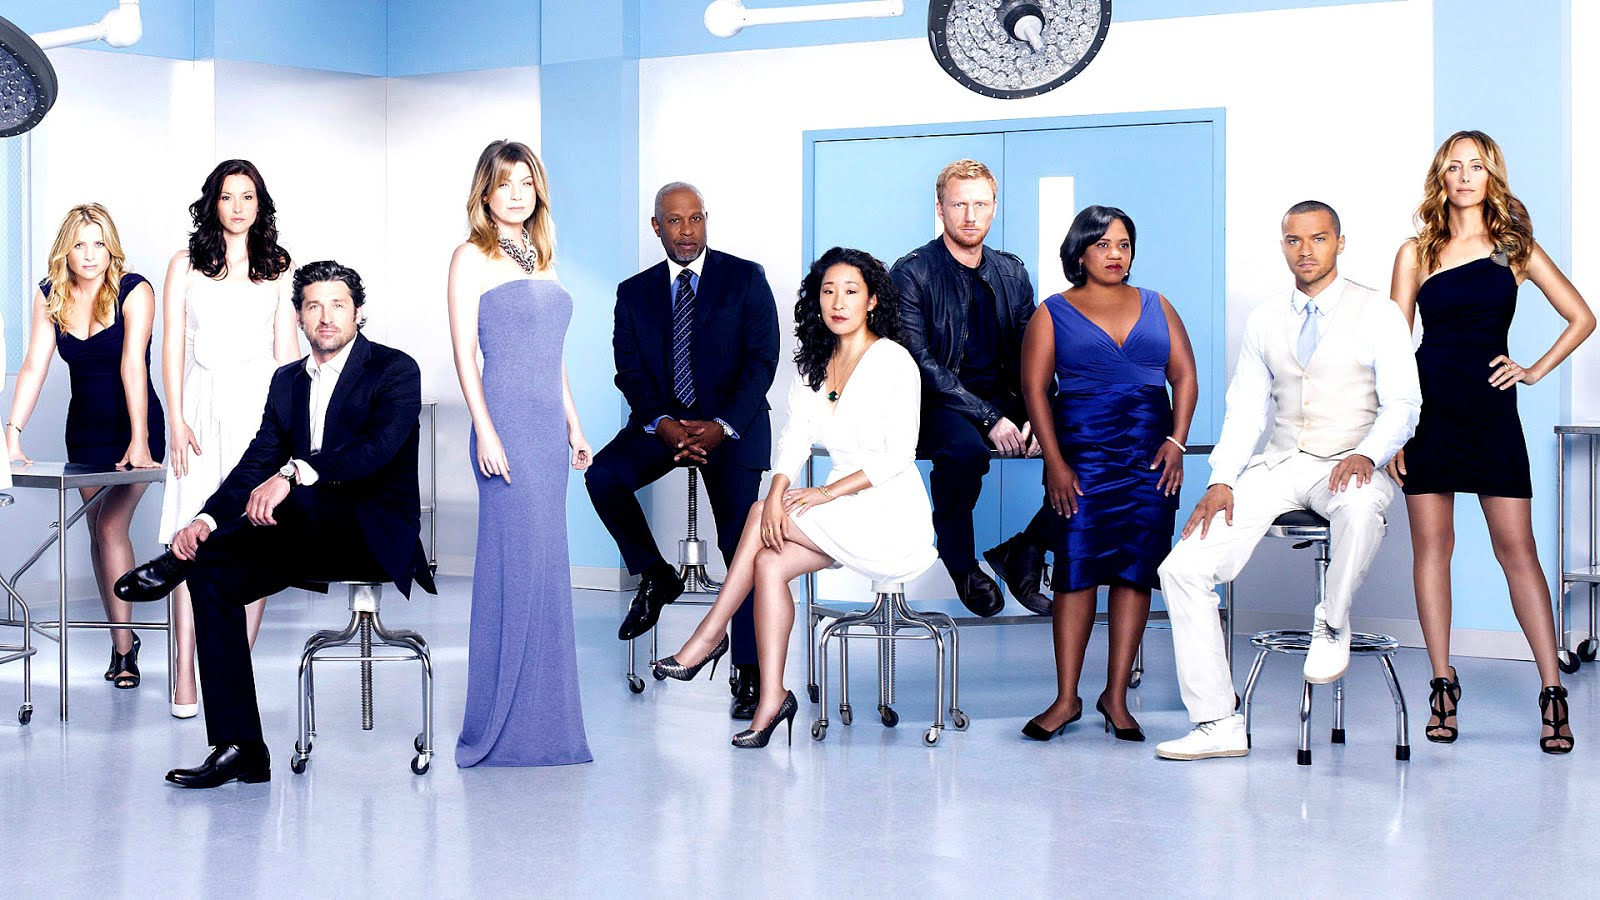 Watch Greys Anatomy Season 10 Episode 11 Sockshare - LTT